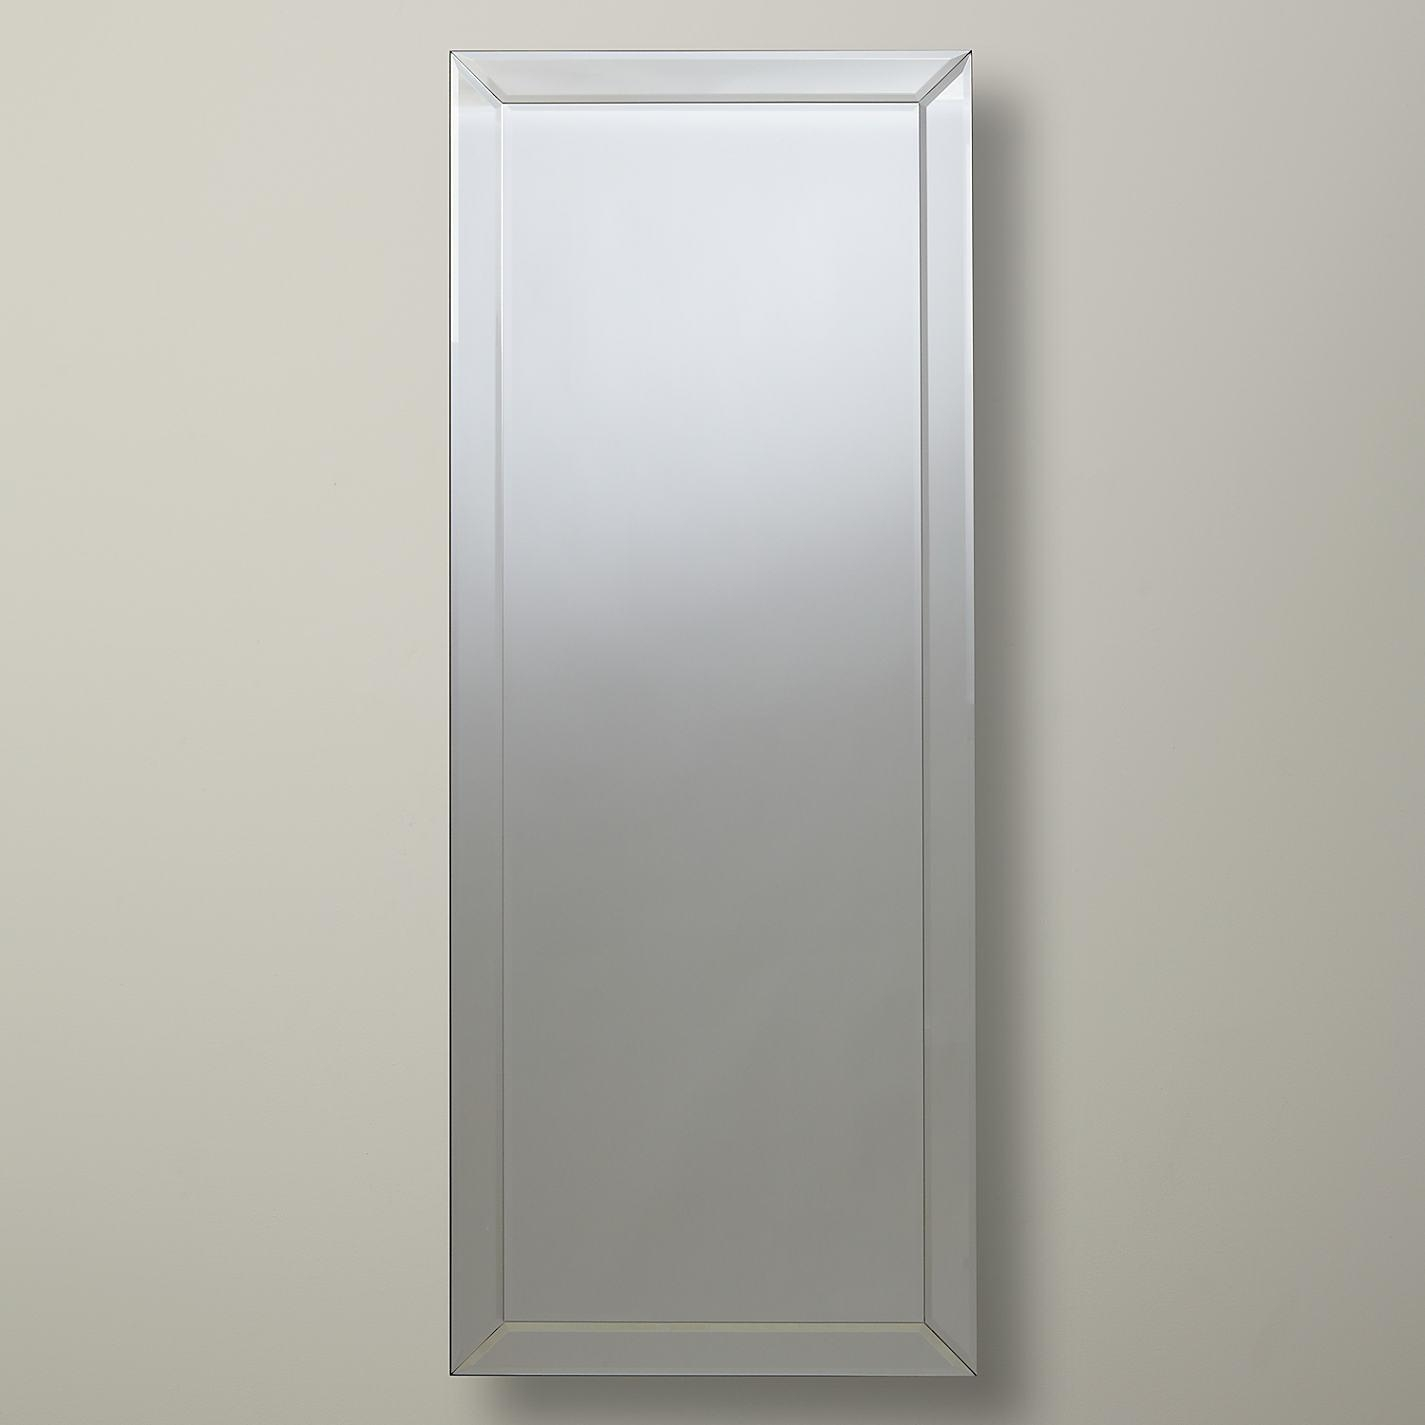 Bevelled Mirror Large – Bevelled Mirror As Indoor Decorative Touch Regarding Large Bevelled Mirror (Image 3 of 20)